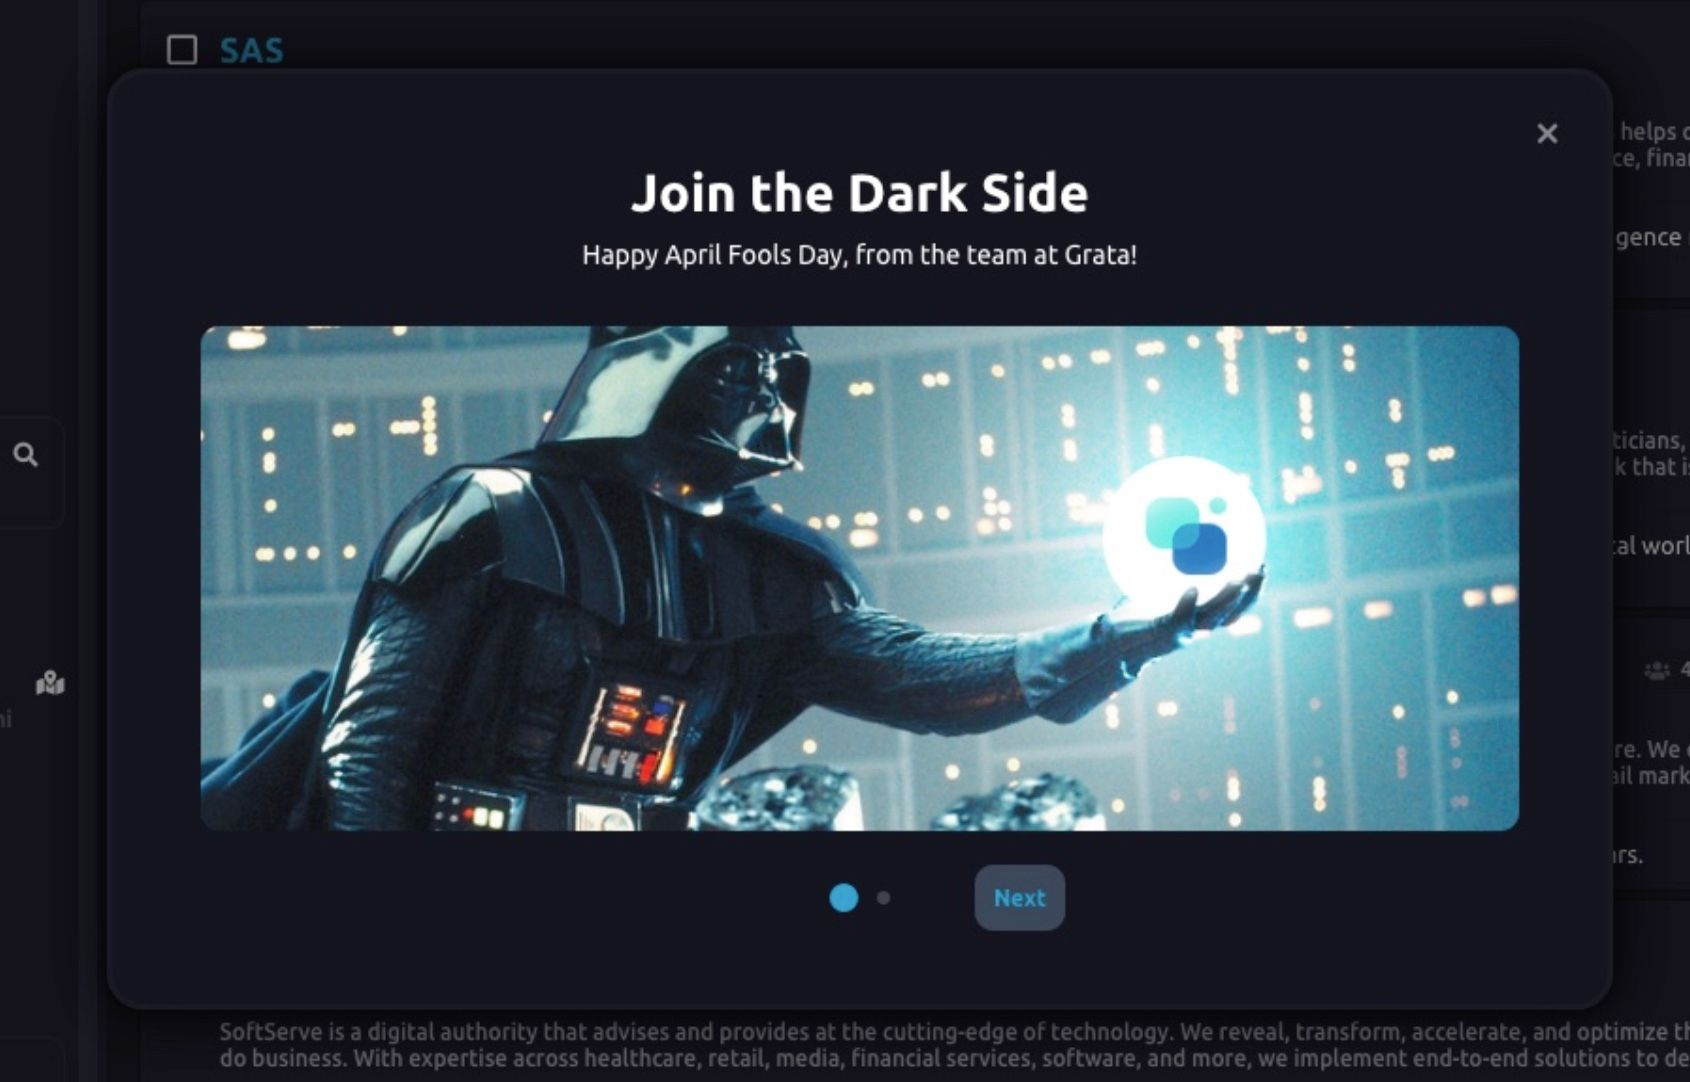 """Join the Dark Side"" by Darth Vader"